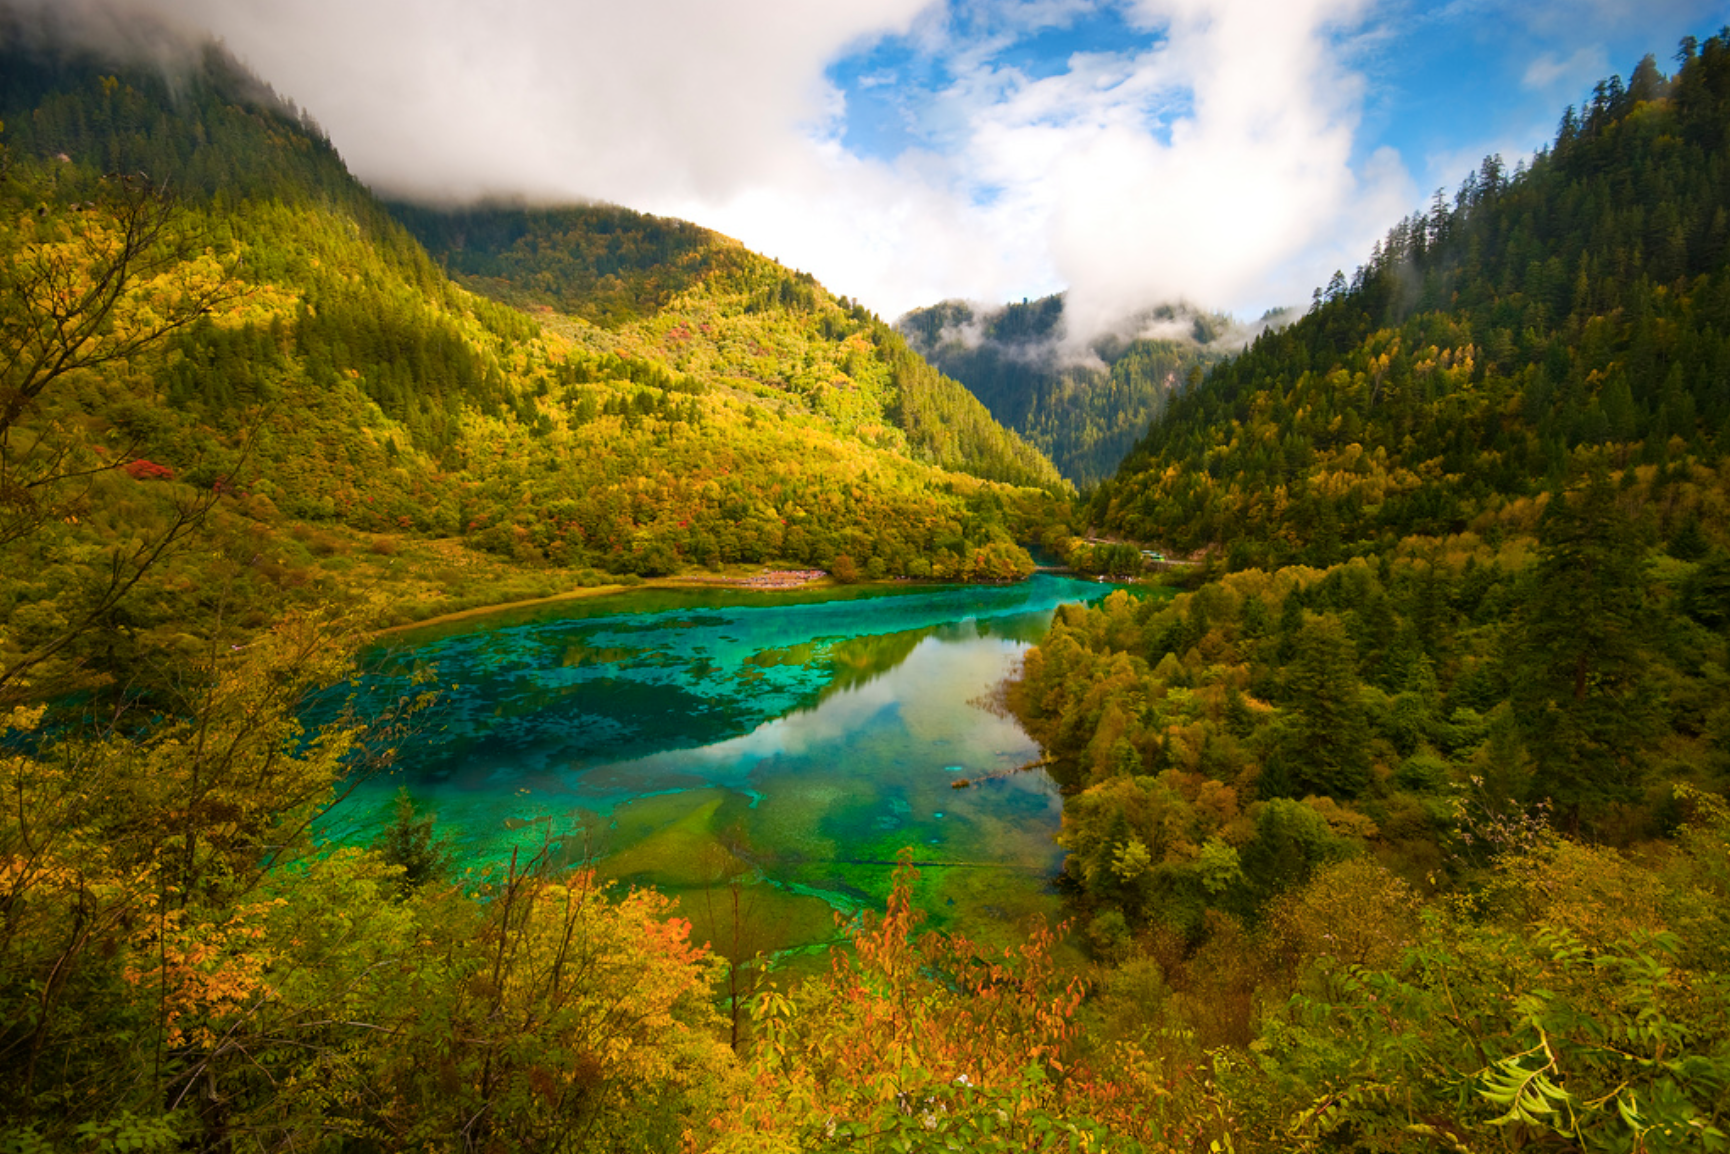 Clearest Water In The World Most Beautiful Lake In The World Jiuzhaigou Alter Minds